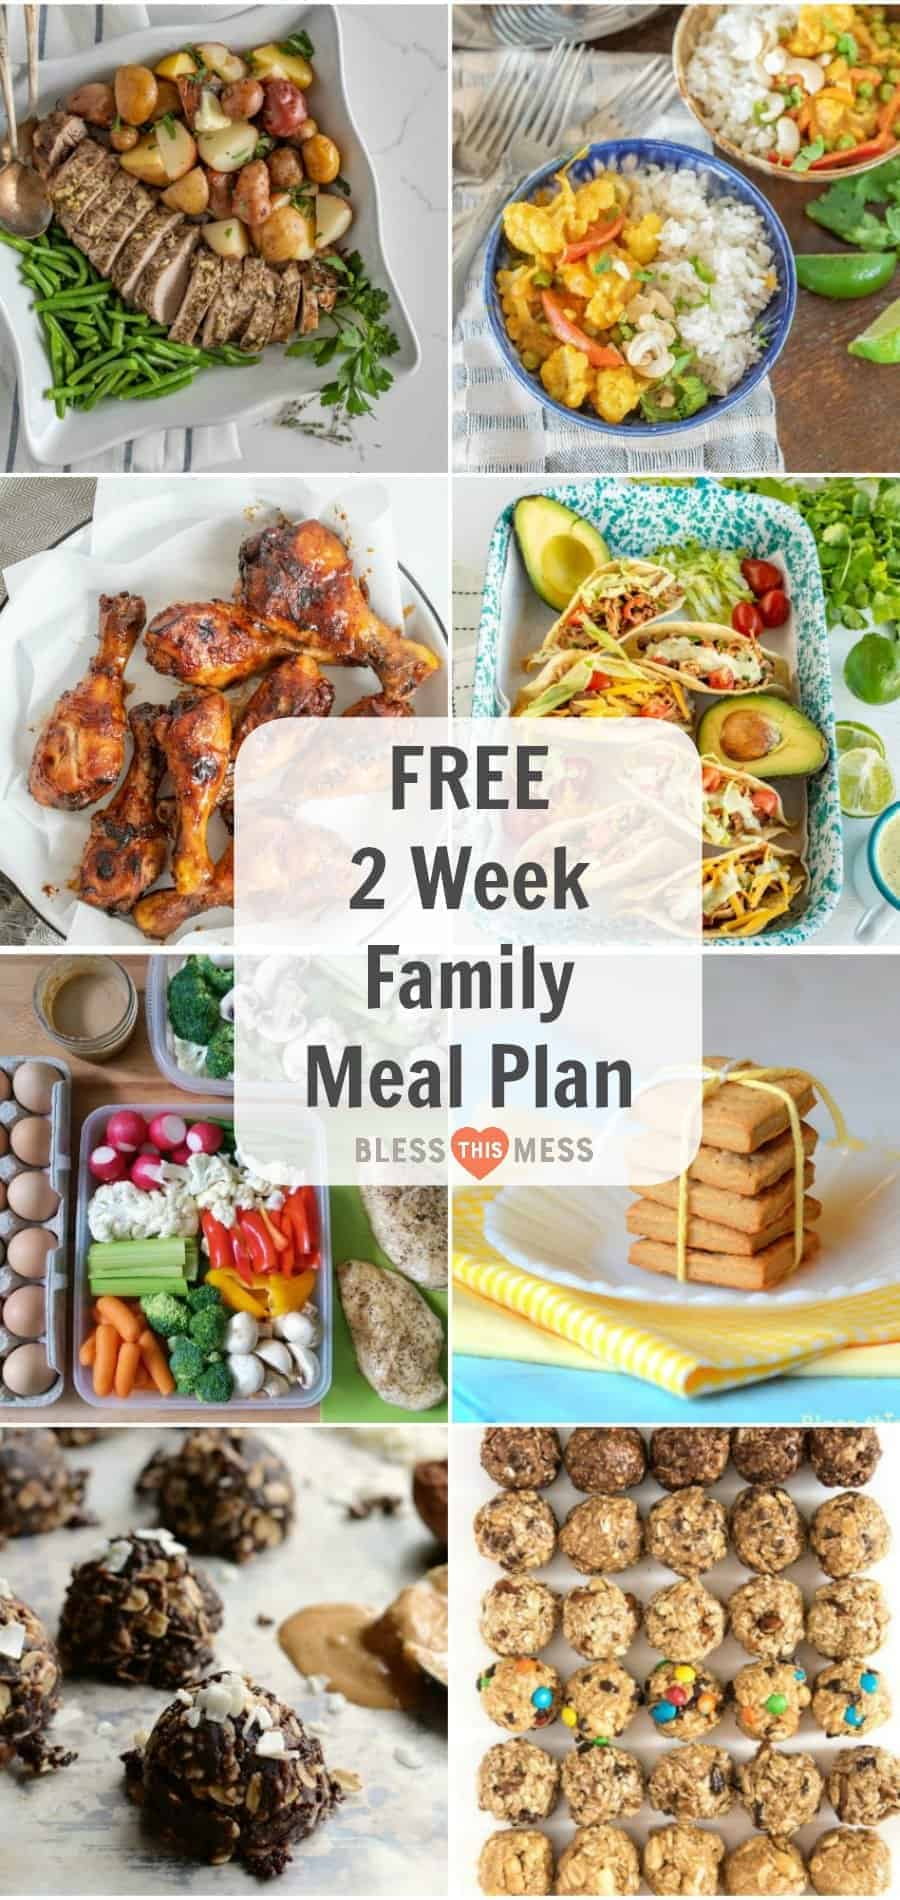 8 Day Clean Eating Meal Plan for the Whole Family